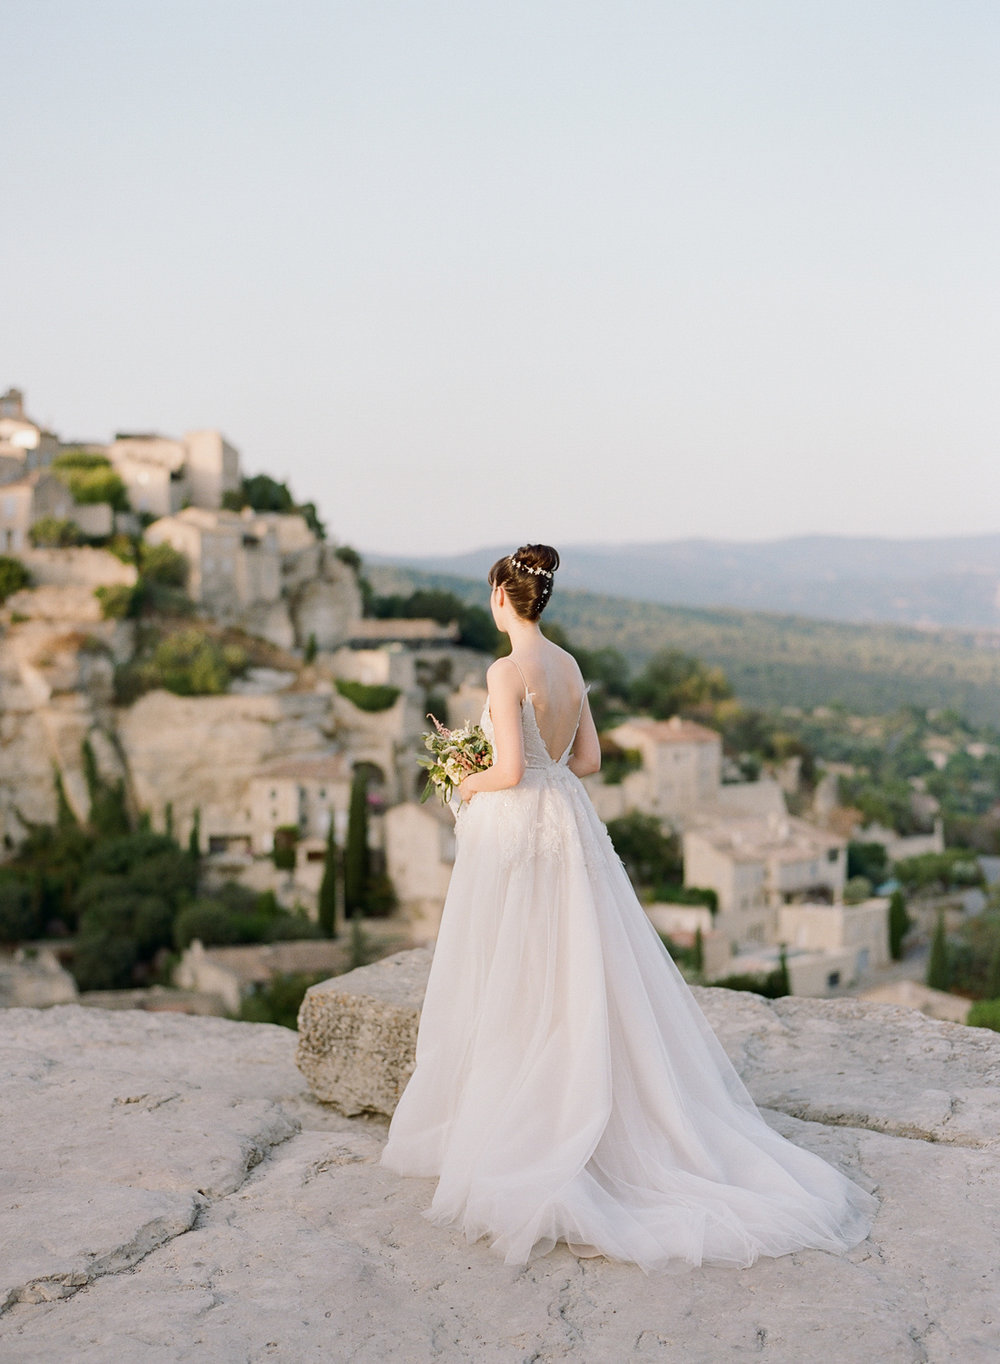 The bride in her fairytale ball gown looks out over the vineyards and village of Gordes, France; Sylvie Gil Photography